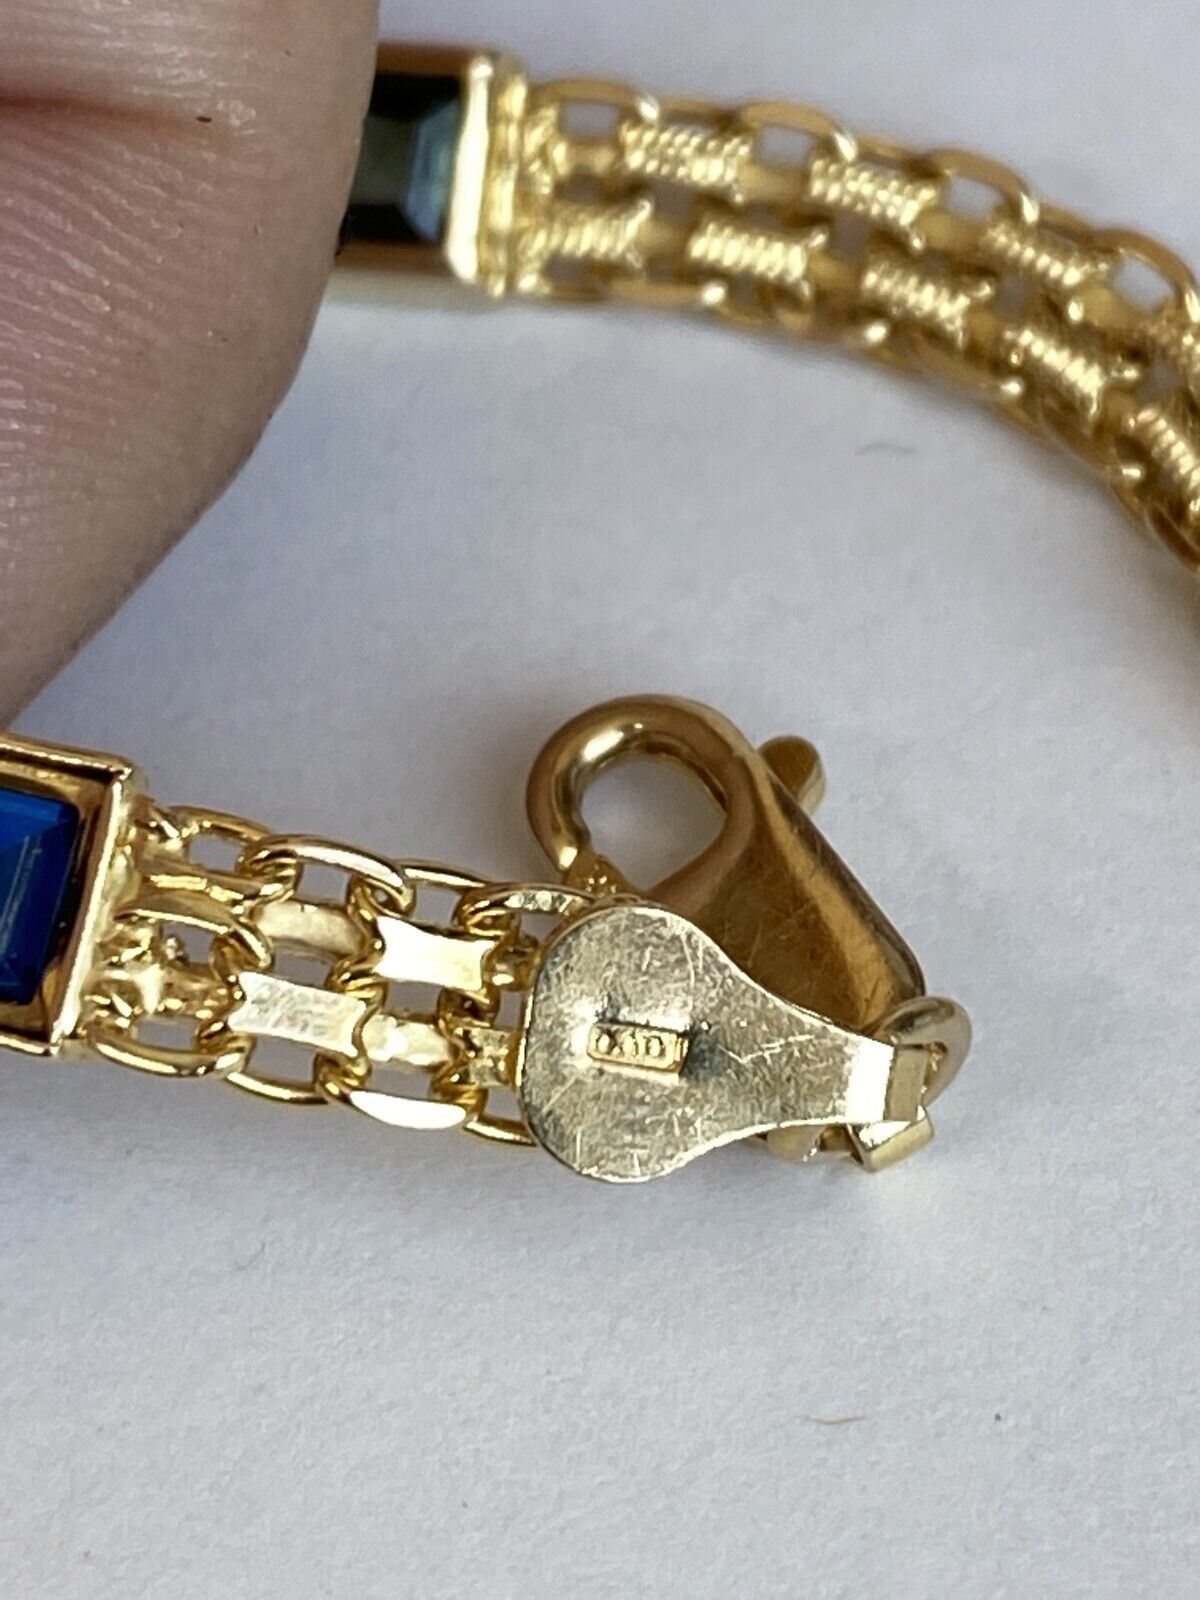 14k Yellow Gold w/ Colored Stones Women's Bracelet 6.3mm  7 1/4 Inches PRETTY!!! 10